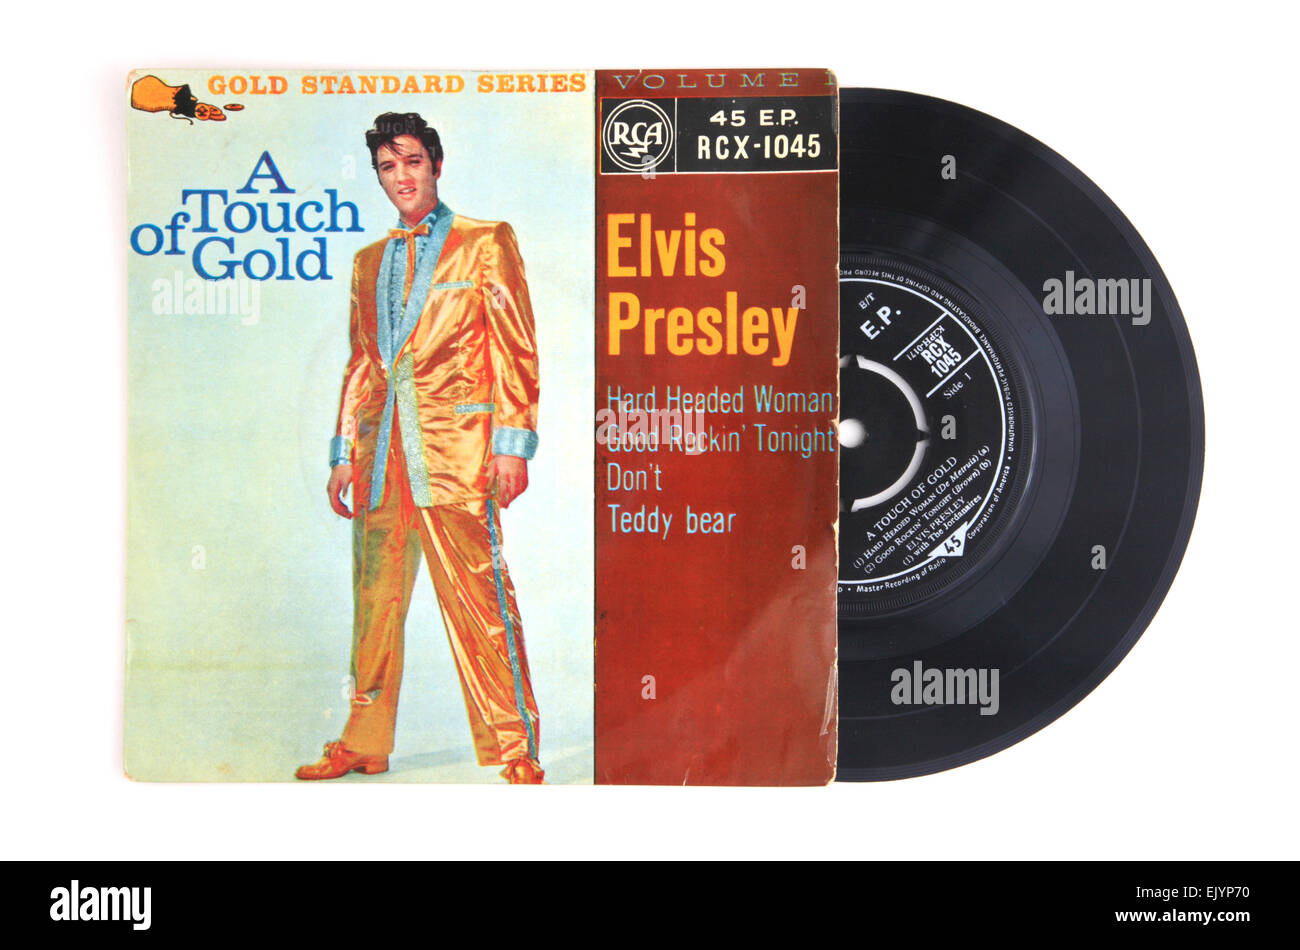 A Touch of Gold vinyl 45 rpm extended play record by Elvis Presley. Stock Photo